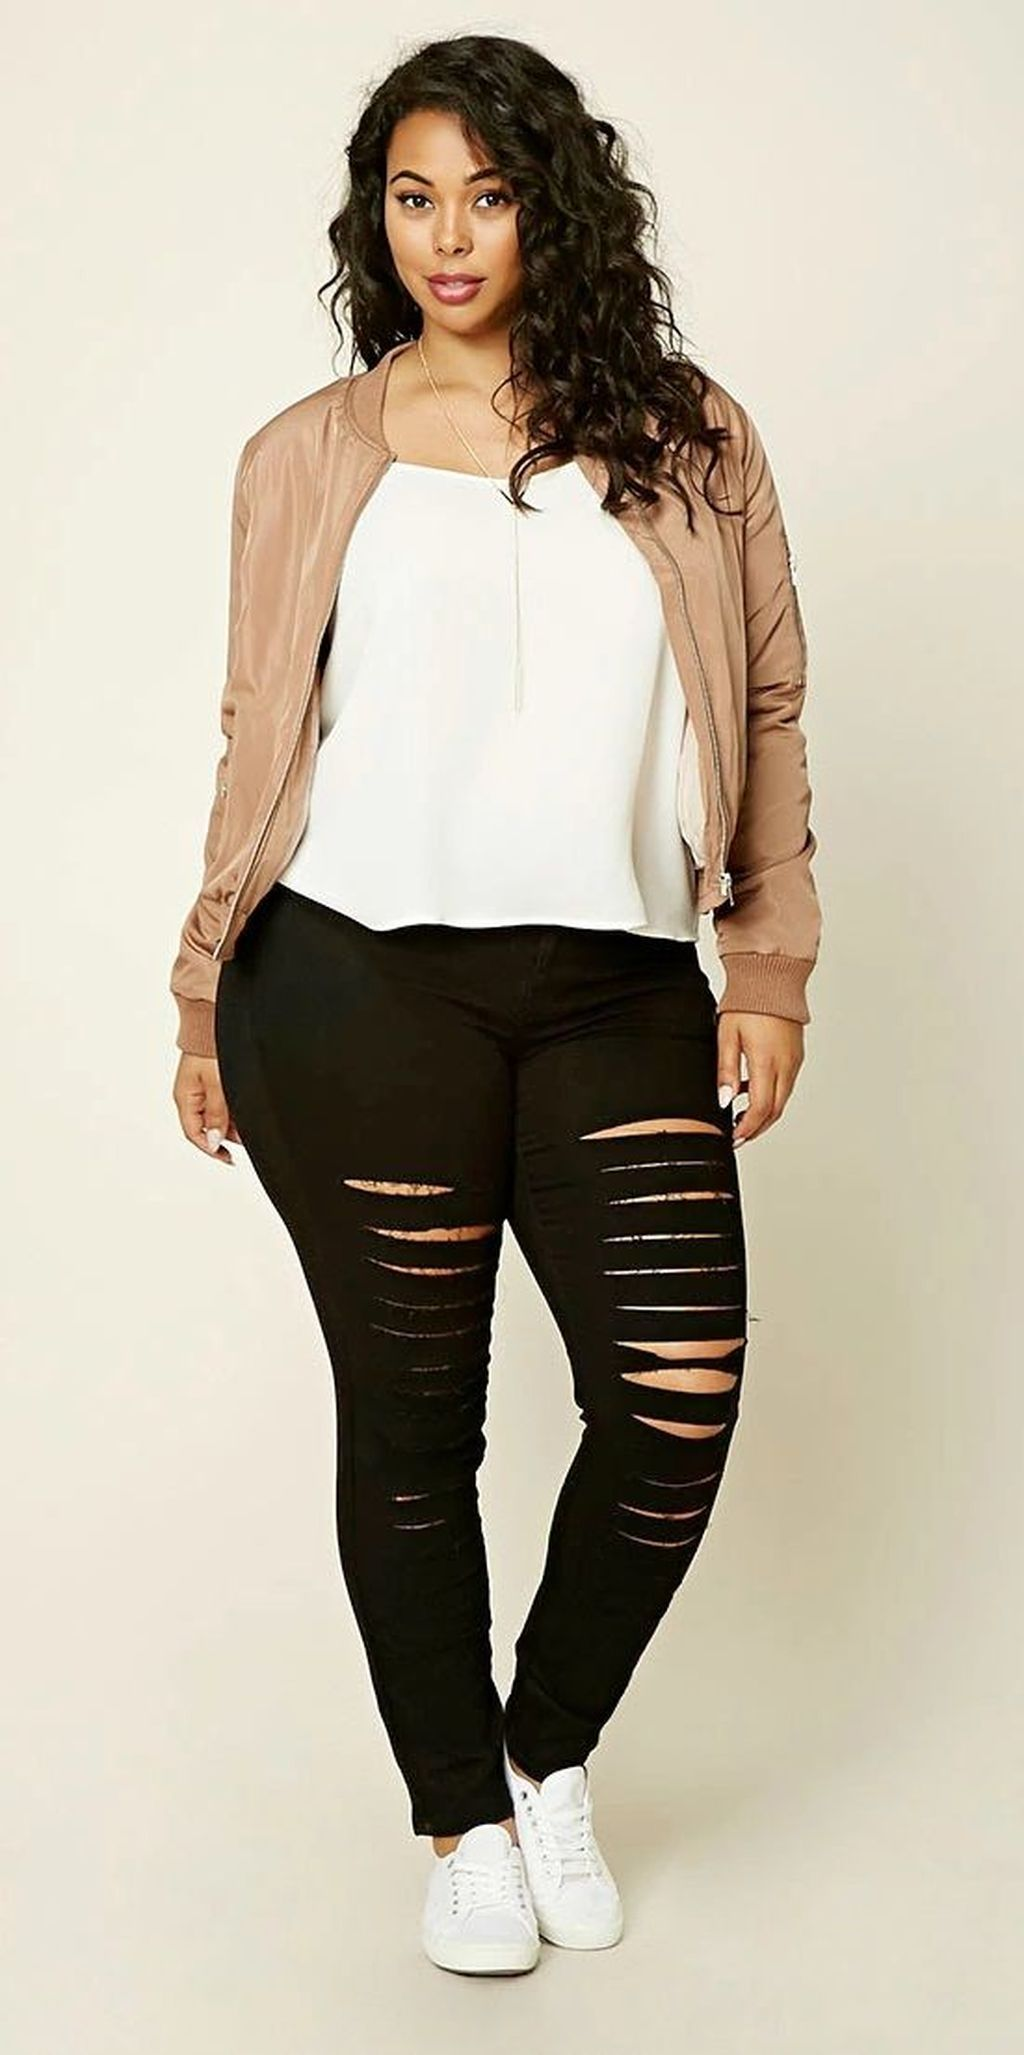 4b3fda21b1 Nice 20 Totally Inspiring Plus Size Fall Outfits Ideas. More at  trendsoutfits.com.